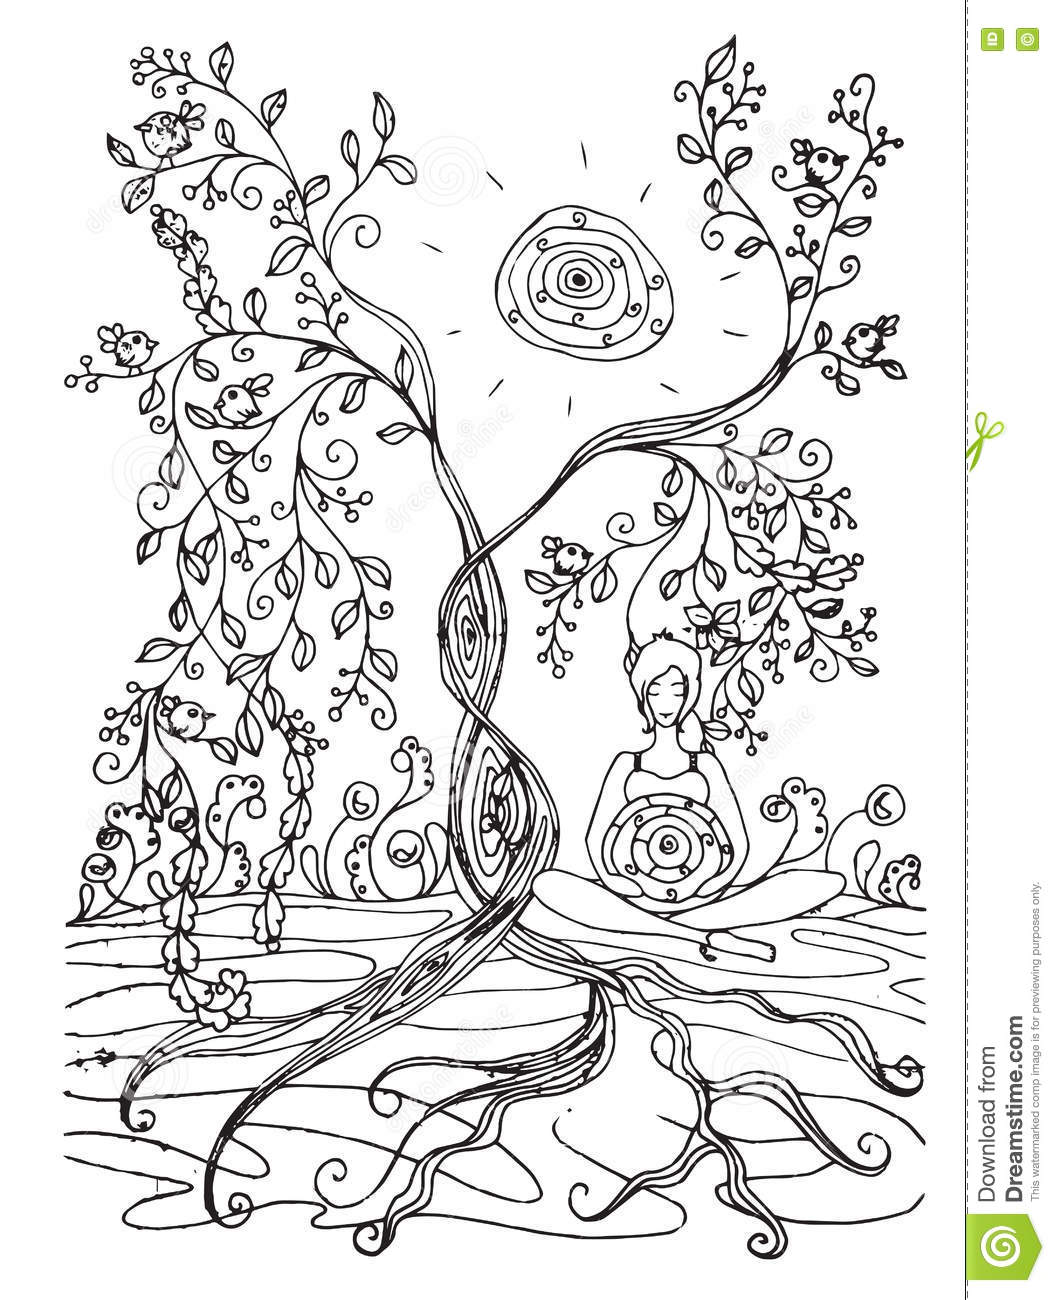 Adult Coloring Book Page With Pregnant Ladyegnancy In Doodle Style Stock Photo